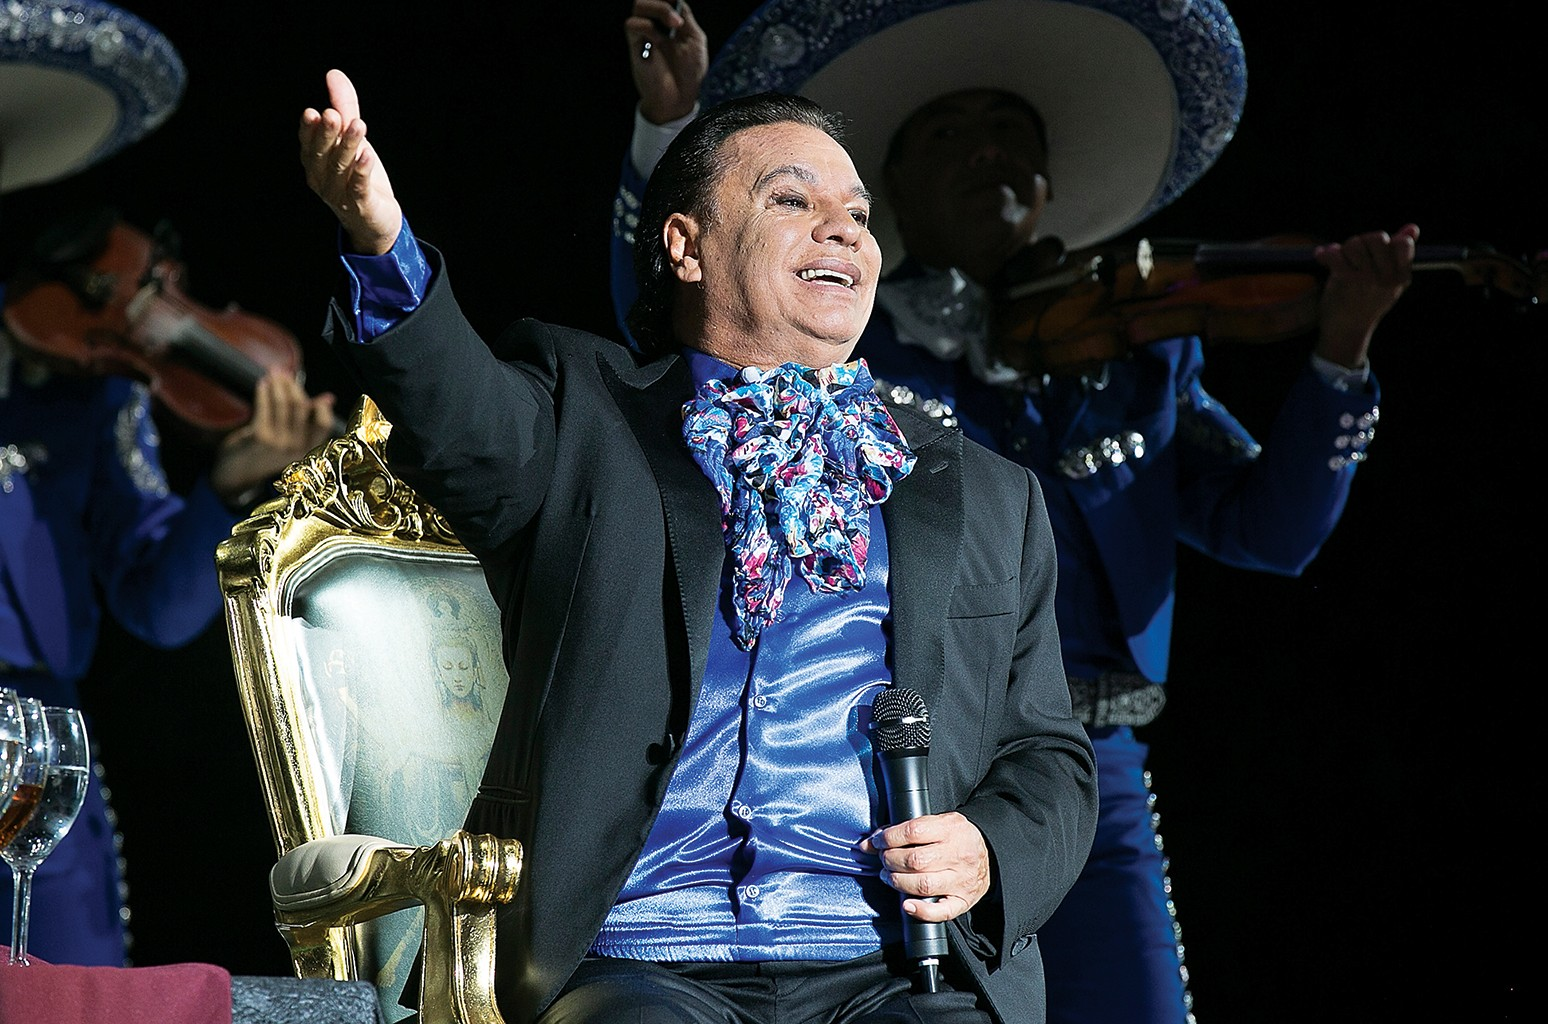 Juan Gabriel performs at The Forum at The Forum on Aug. 26, 2016 in Inglewood, Calif.